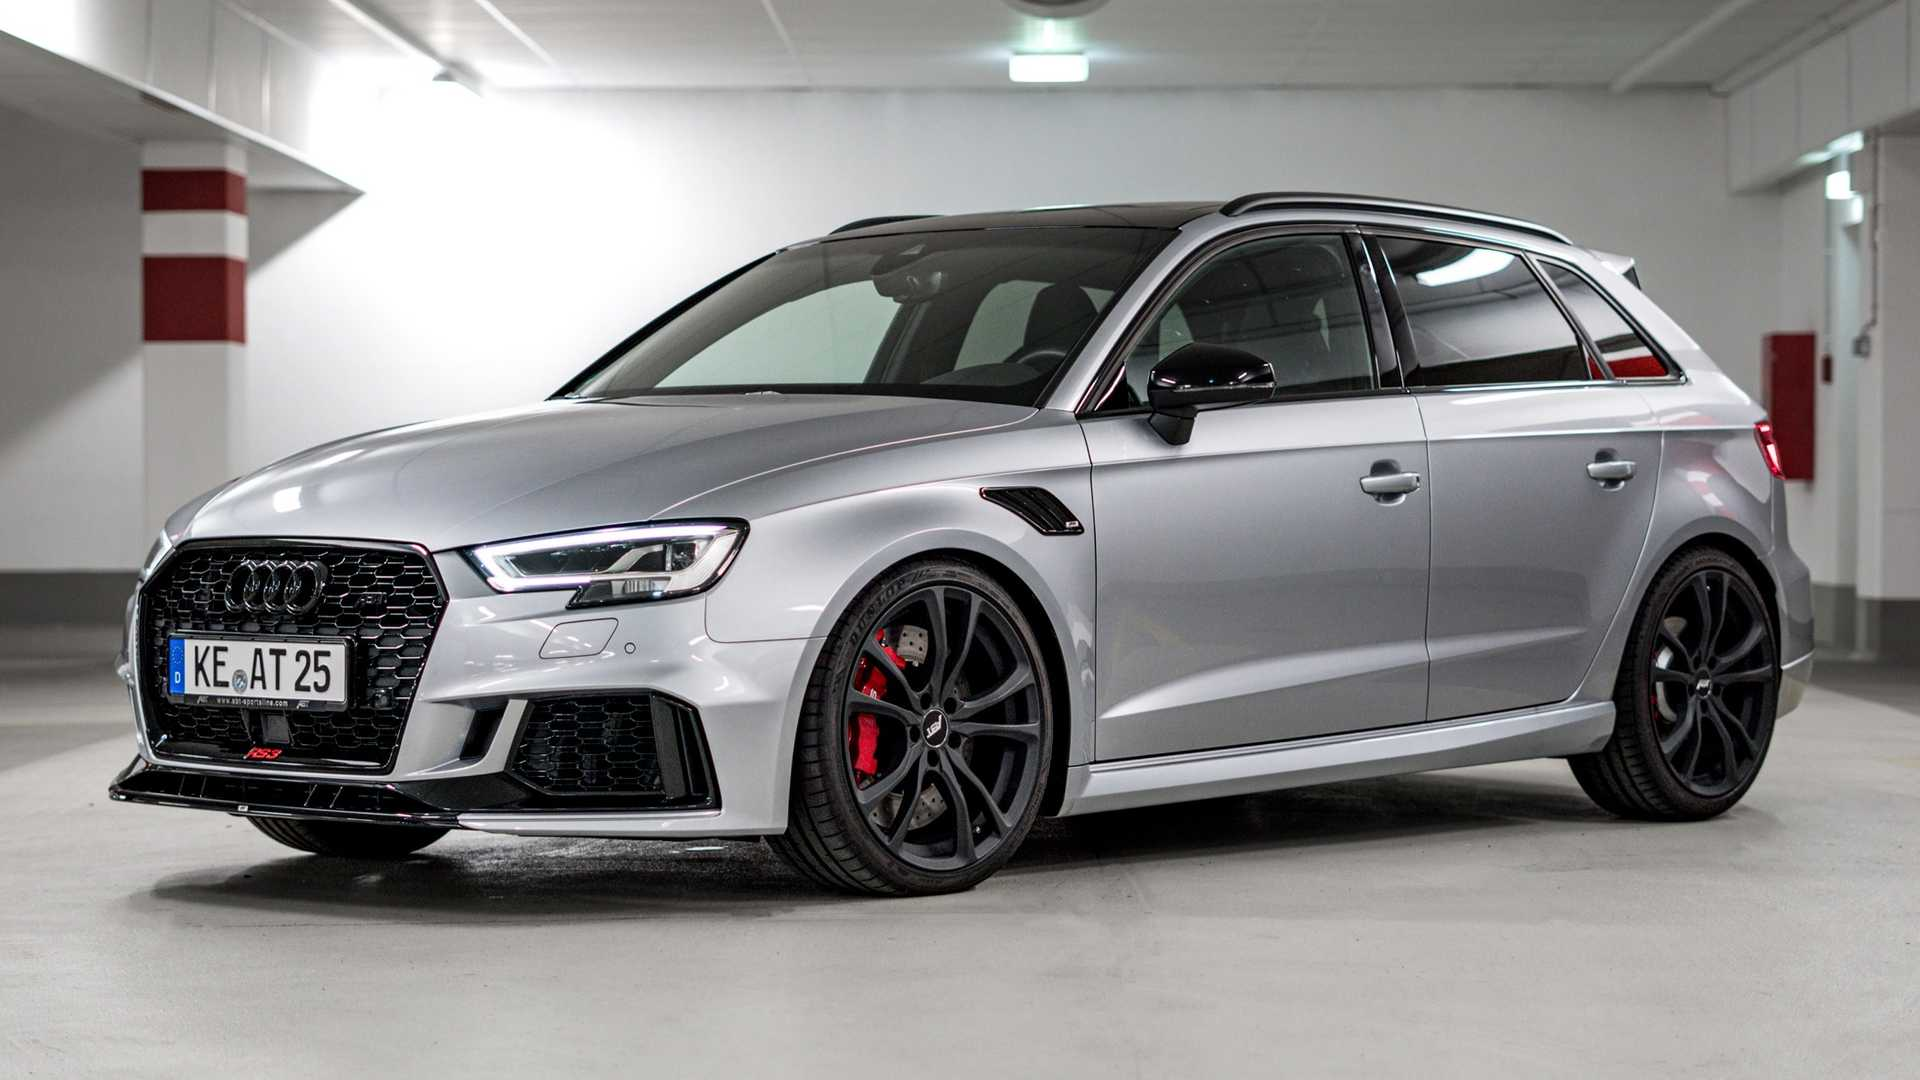 Audi Rs3 Sportback Tuned By Abt Makes 464 Bhp